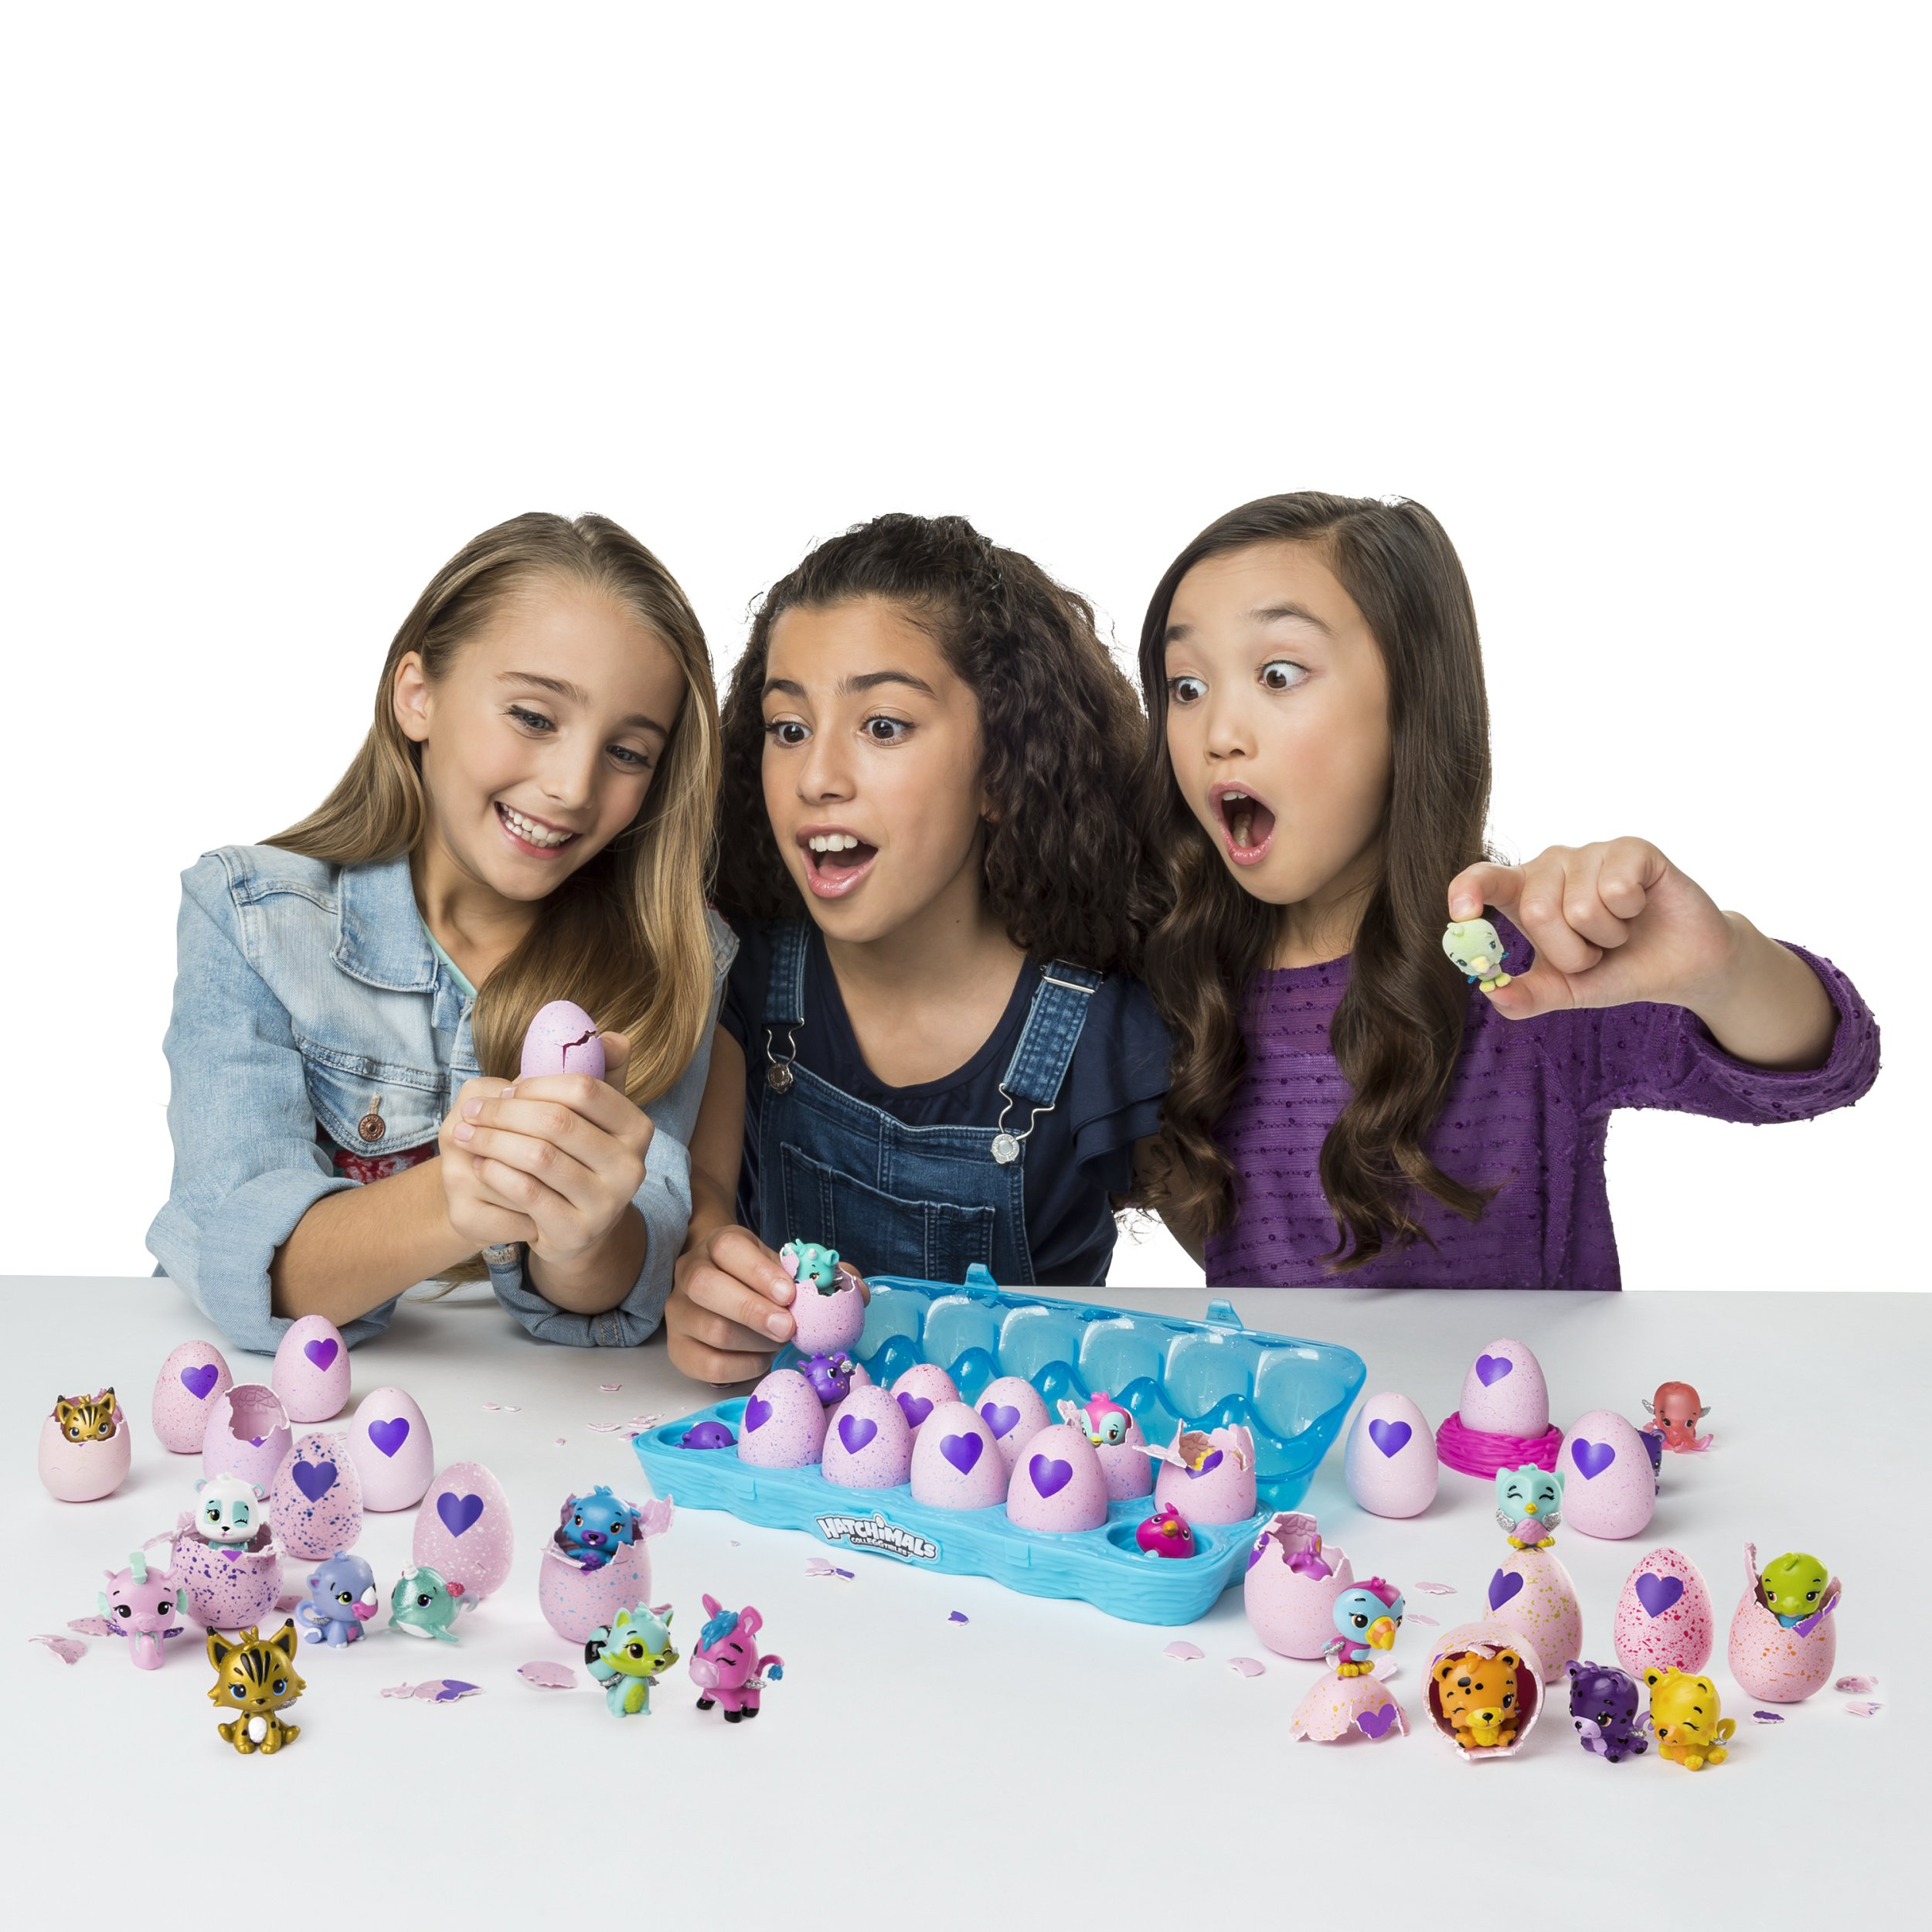 Hatchimals CollEGGtibles Season 2 - 12-Pack Egg Carton by Spin Master by Hatchimals (Image #3)